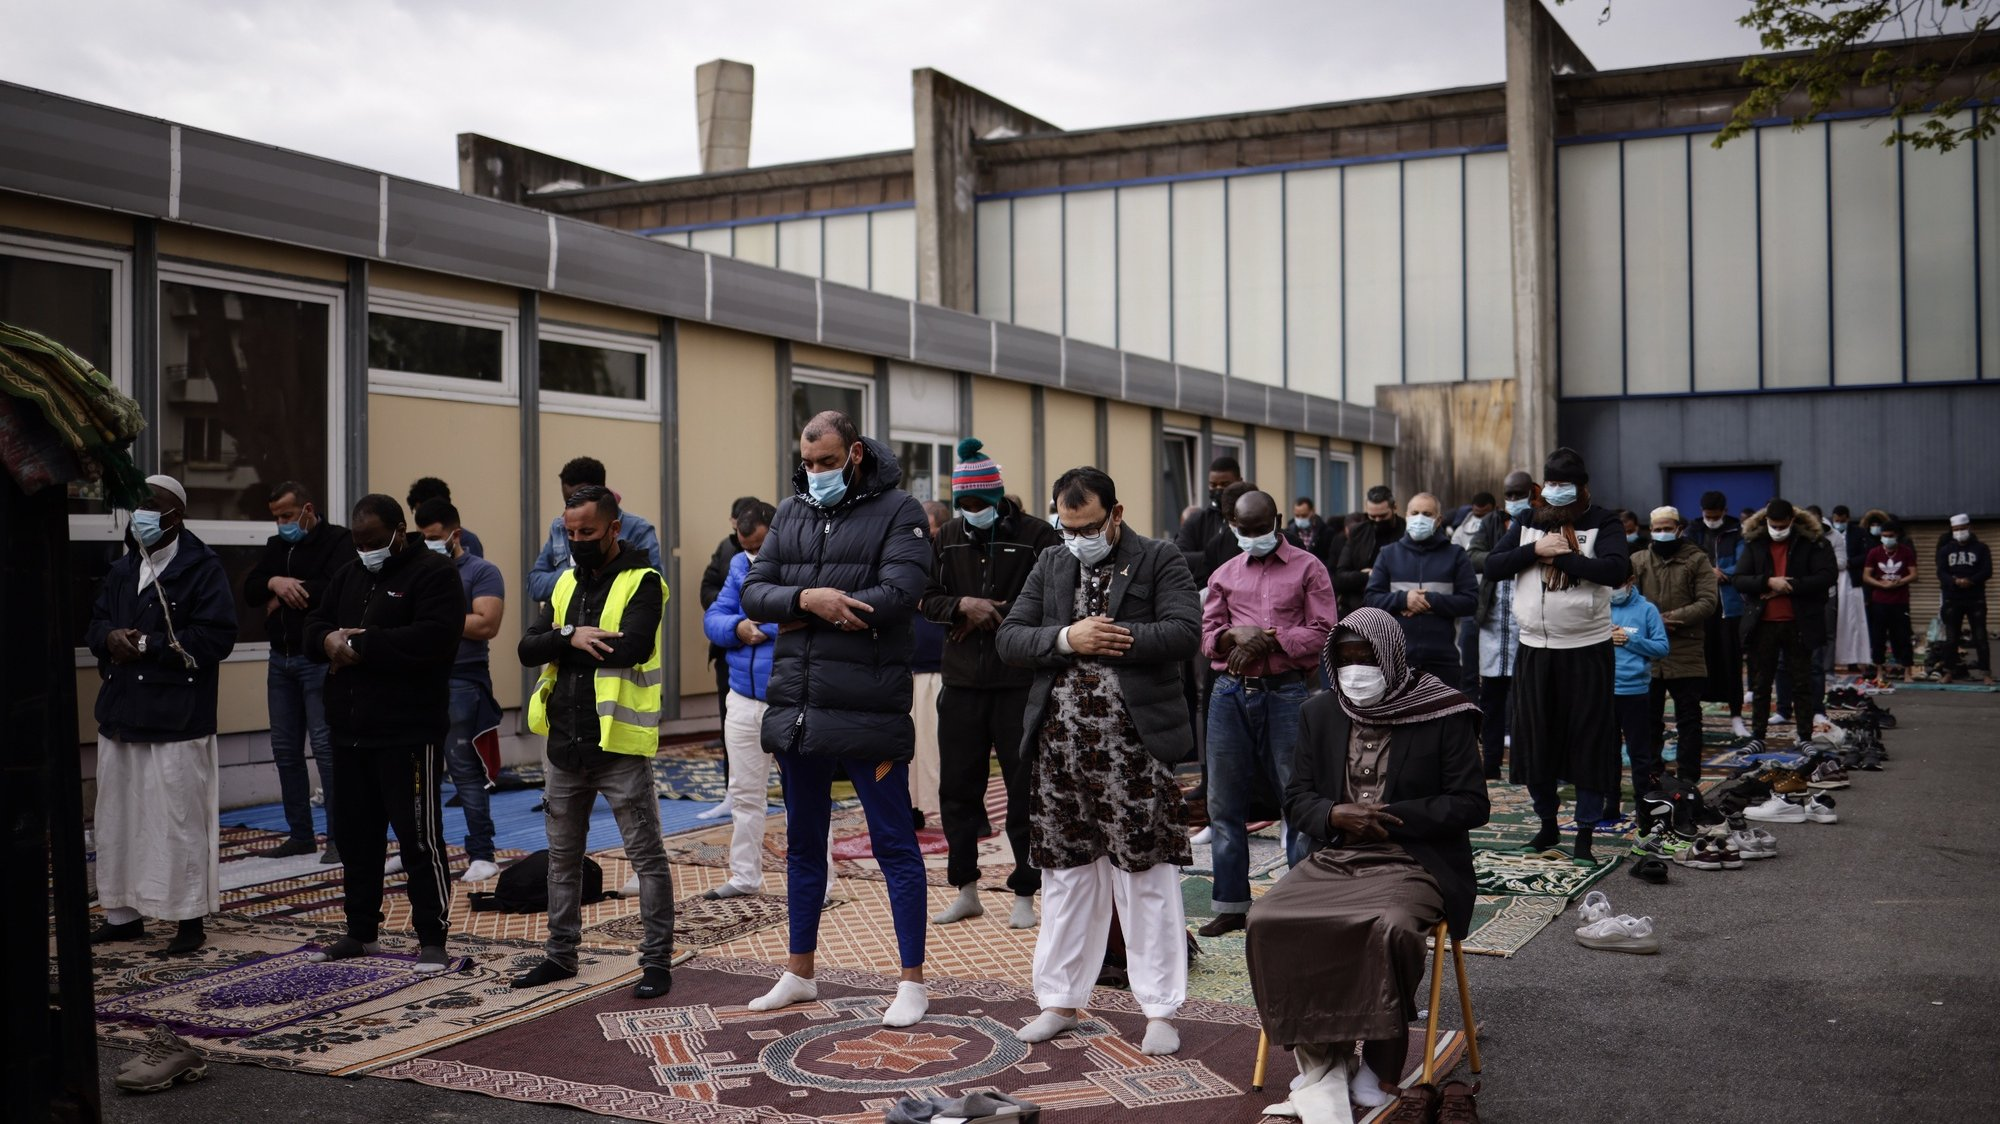 epa09124486 Muslim men preform Friday prayers on the reopening day of the Great Mosque in Pantin, near Paris, France, 09 April 2021. After six months of administrative closure for having relayed video following the terrorist attack and death of French teacher Samuel Party in Conflans-Sainte-Honorine, the Great Mosque of Pantin is now reopened to believers as Muslims around the world prepare ahead of the upcoming fasting month of Ramadan, which begins on 13 April.  EPA/YOAN VALAT